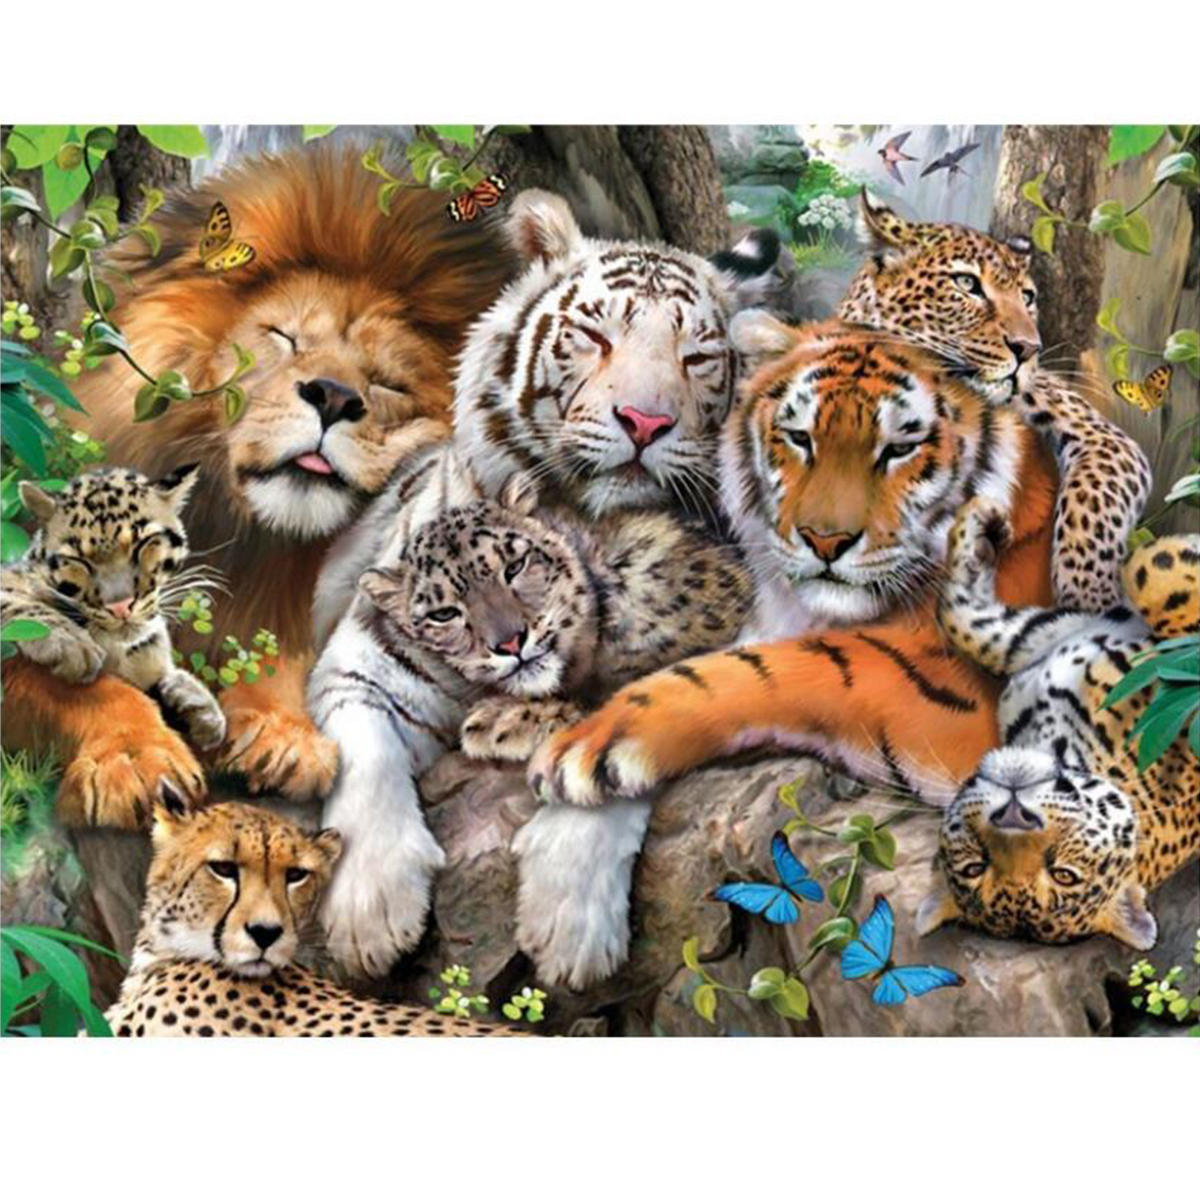 Animal Lion Tiger Cheetah DIY 5D Diamond Paintings Tool Embroidery Cross Stitch Decor